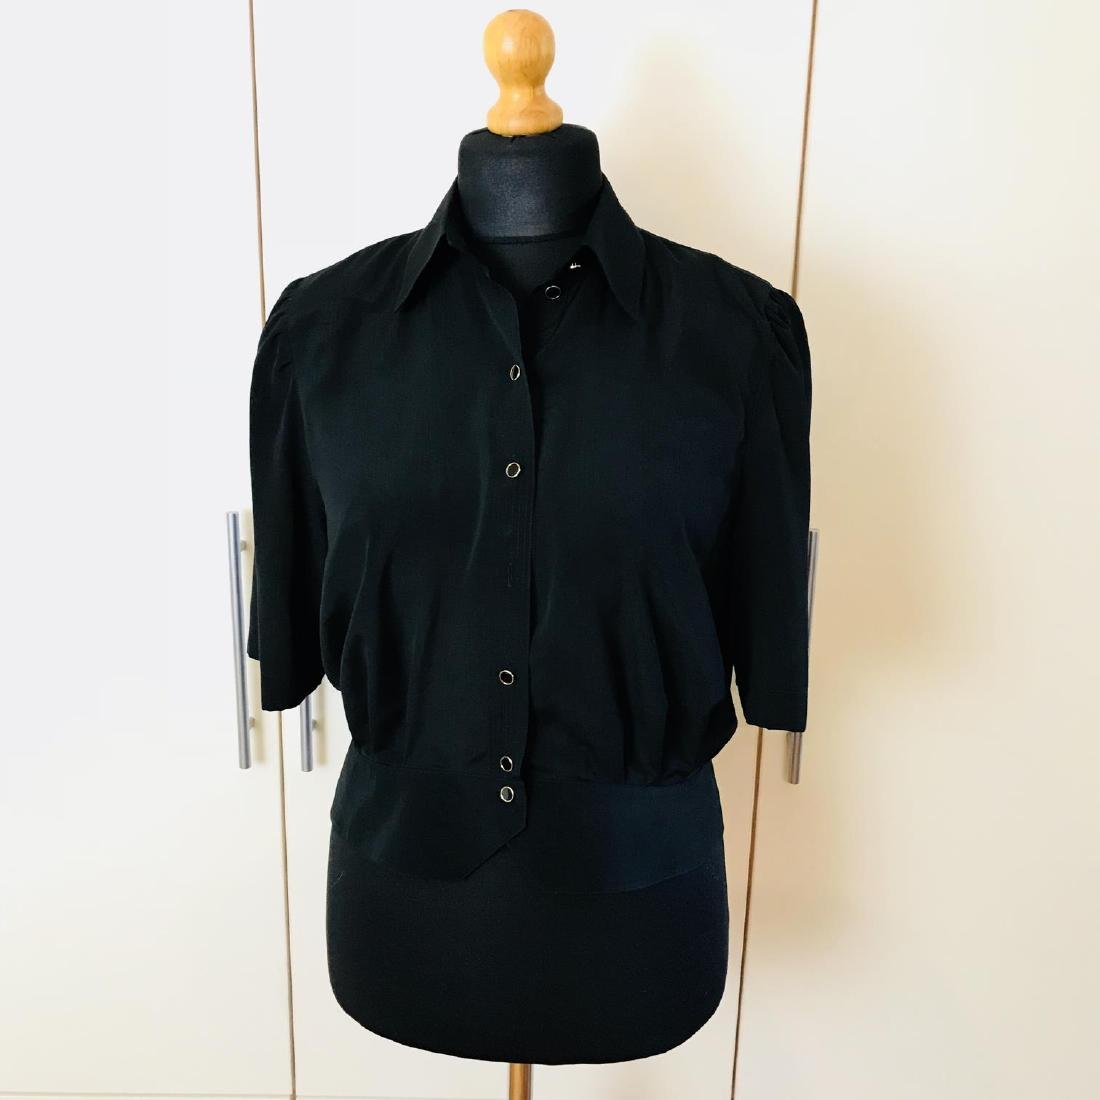 Vintage Women's Black Blouse Shirt Top Size EUR 40 US